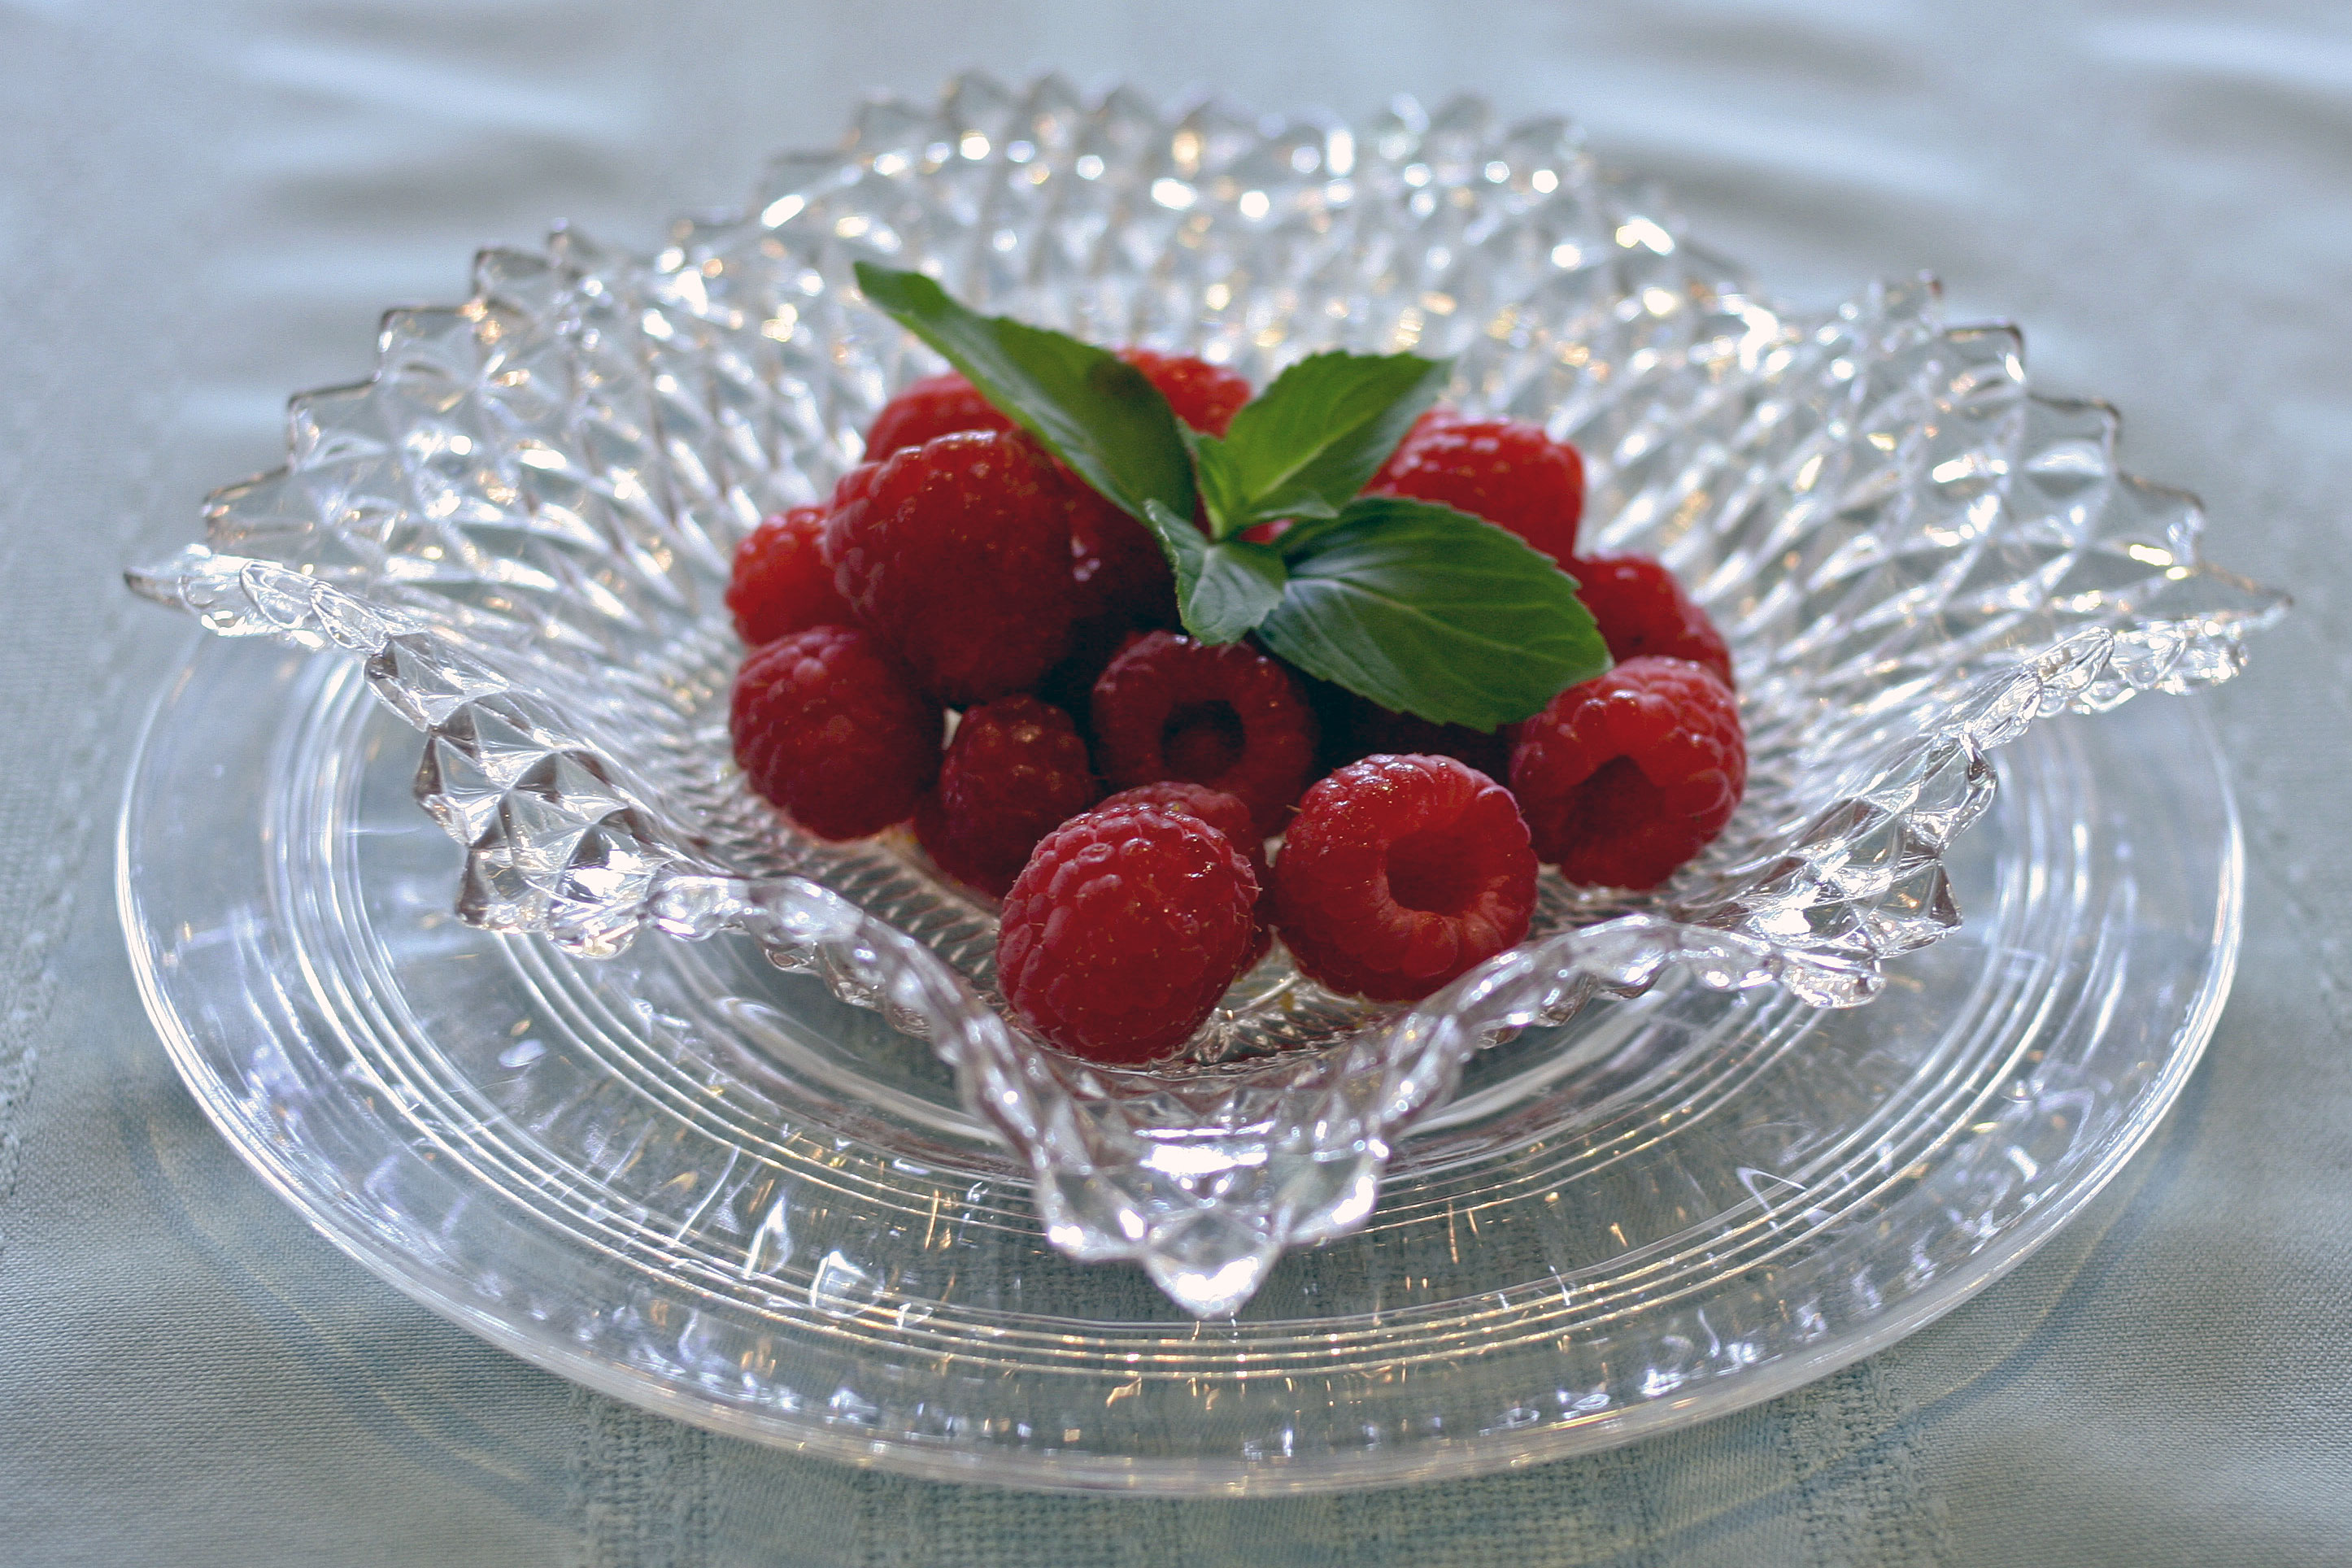 Mint And Orange Syrup Over Raspberries